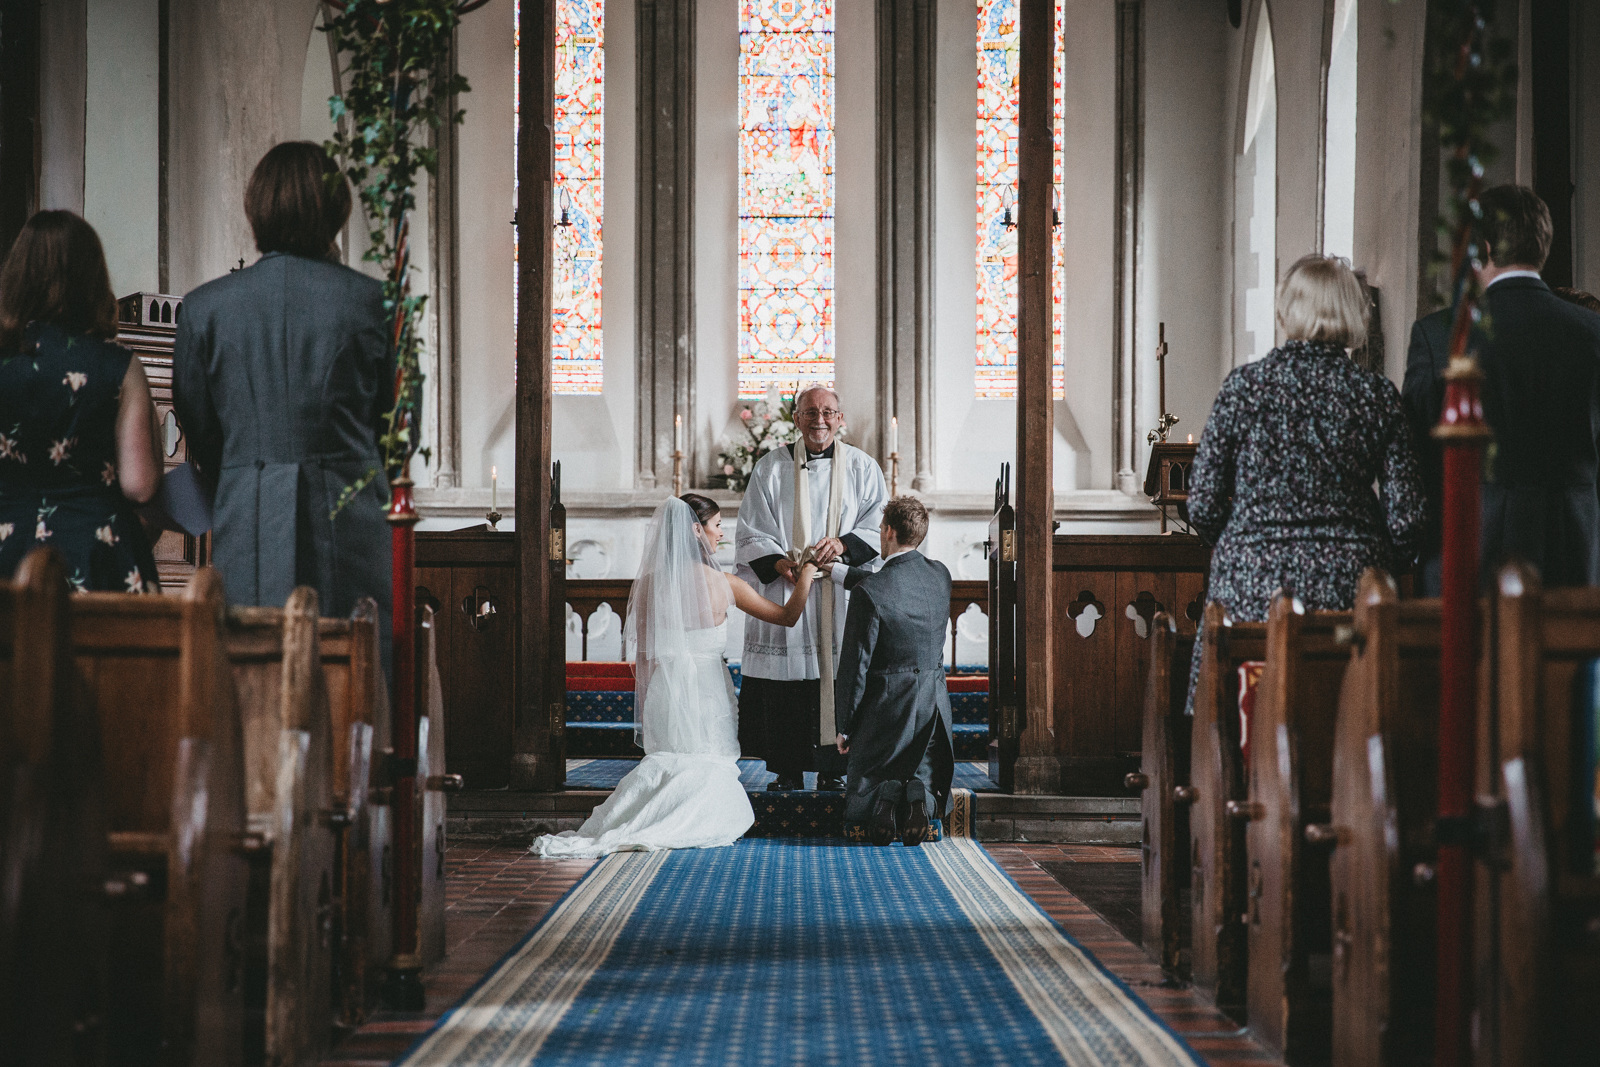 Chris Bradshaw Wedding Photography - Simon & Amanda Wedding Photos-45